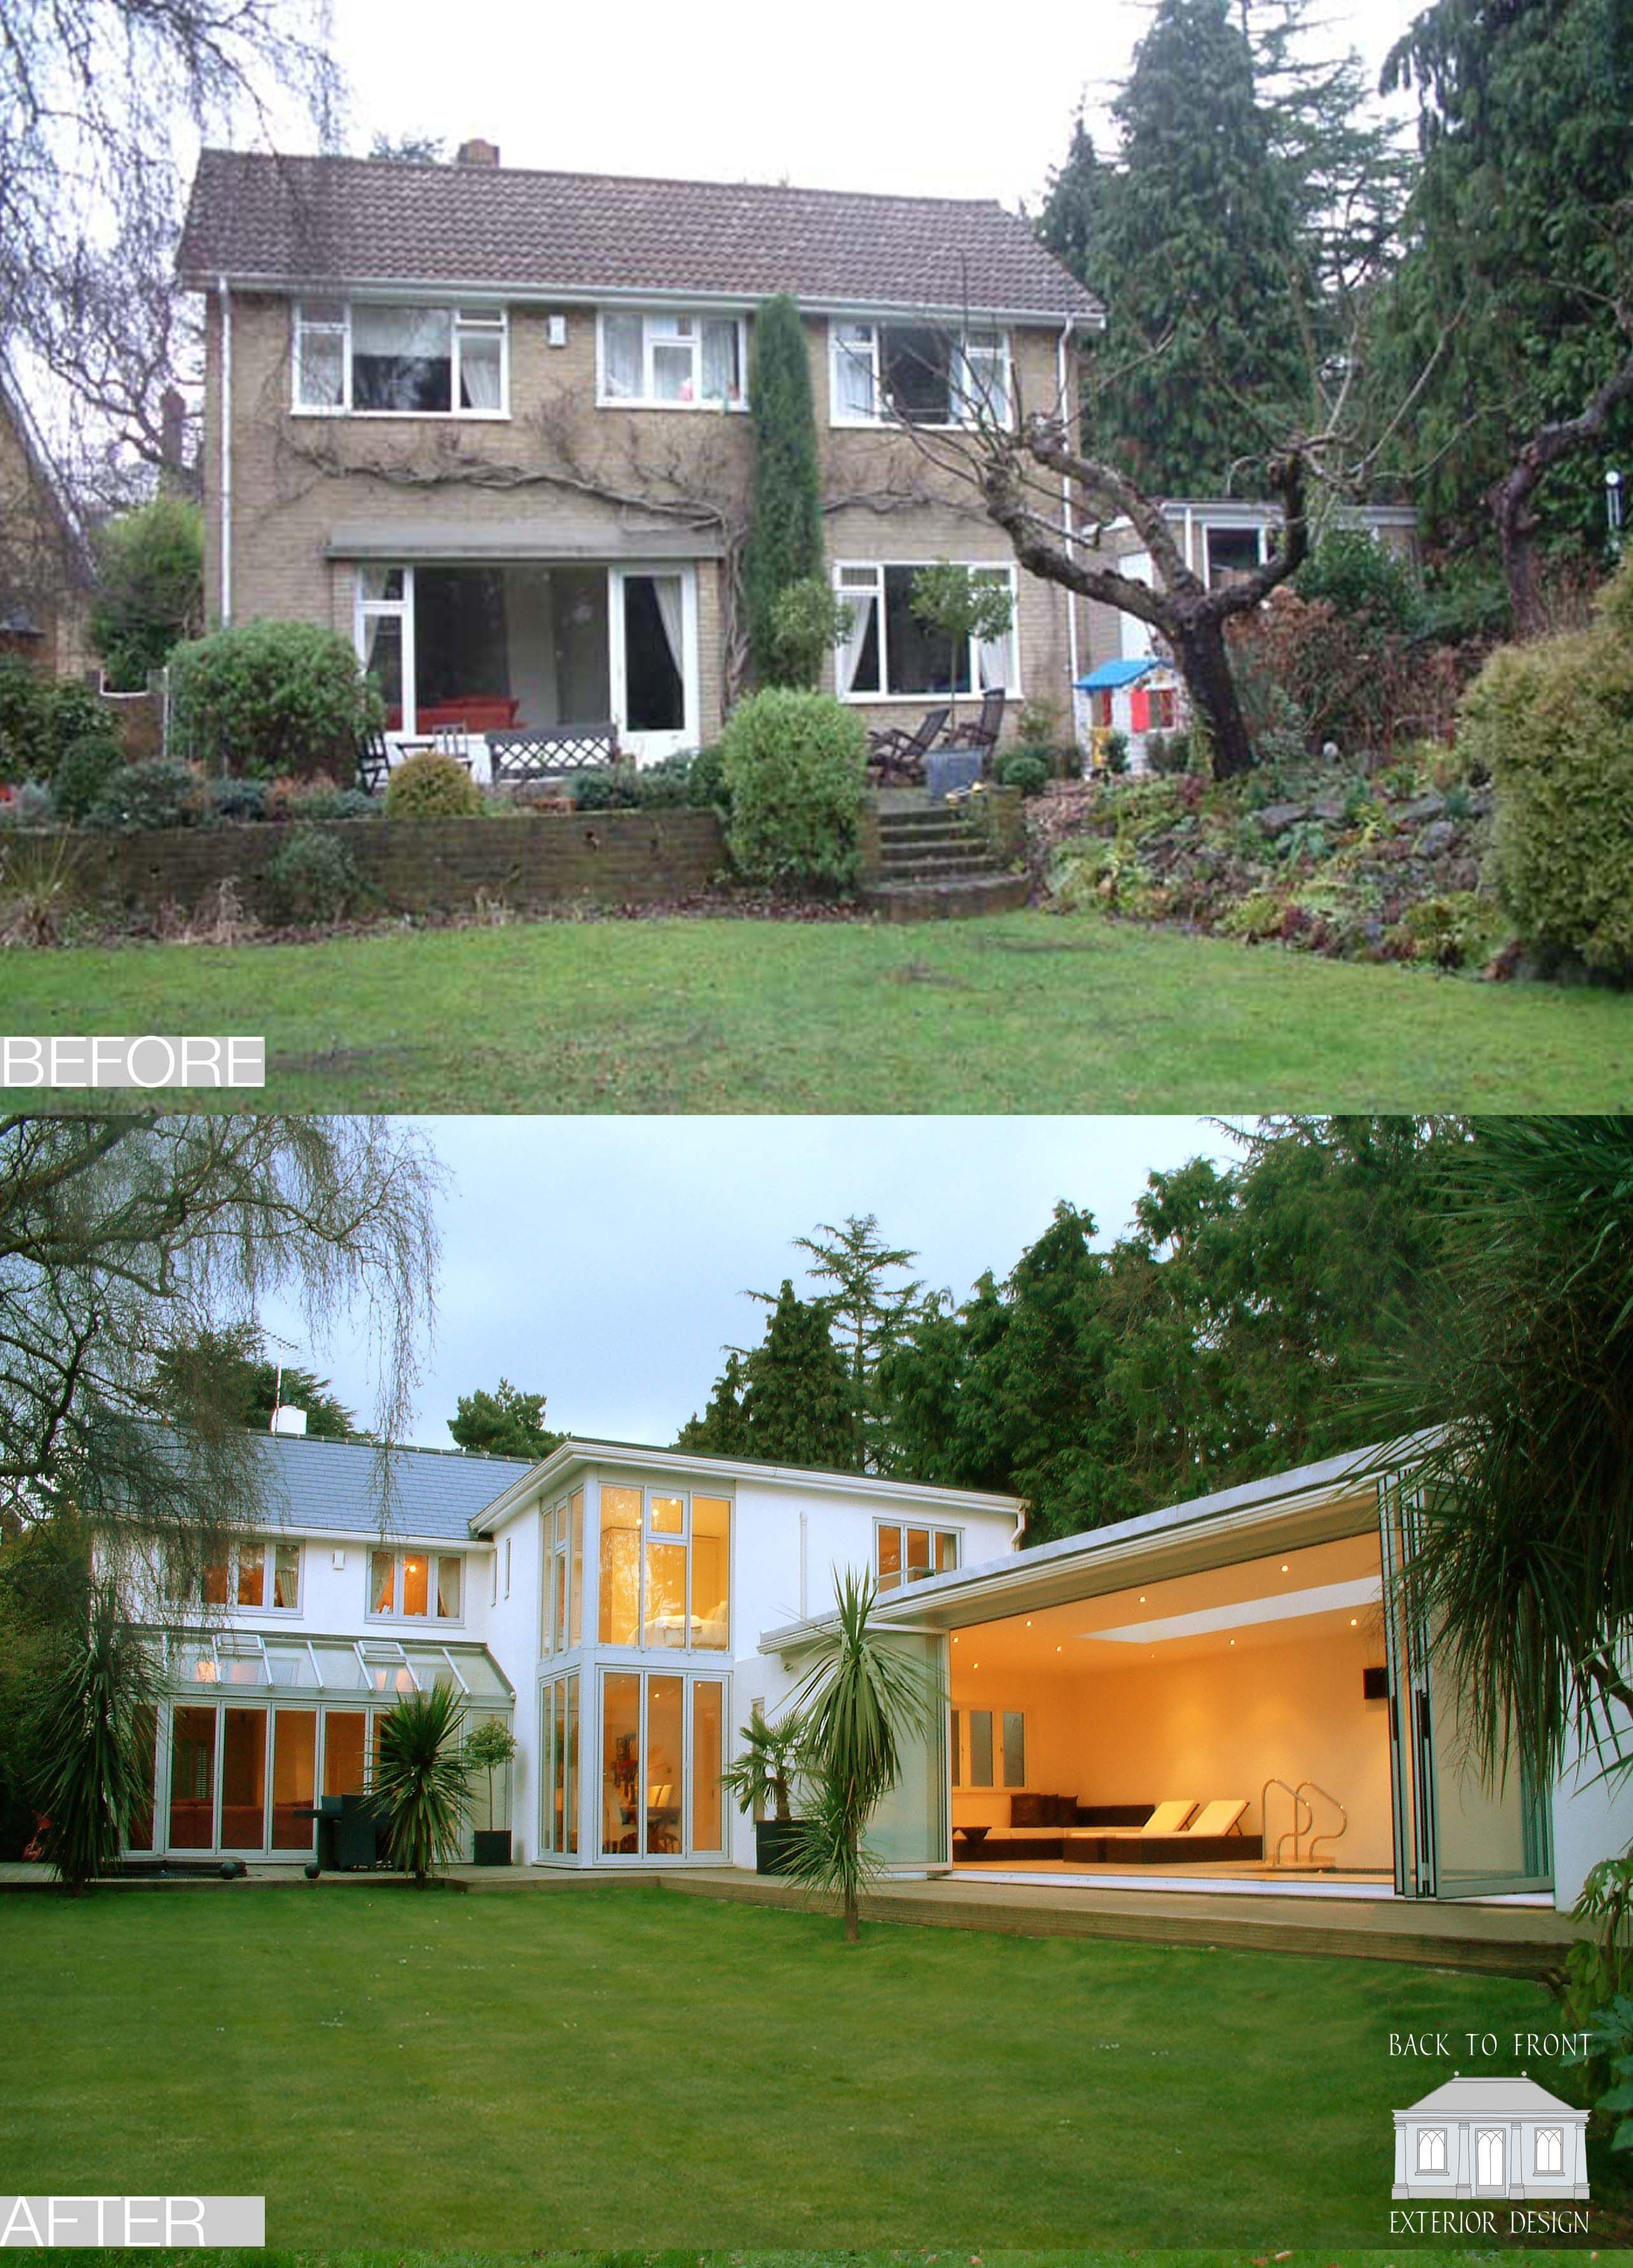 1960 S Before And After Remodelling Project In Guildford Surrey By Back To Front Exterior: 1960's Exterior Transformation By Back To Front Exterior Design